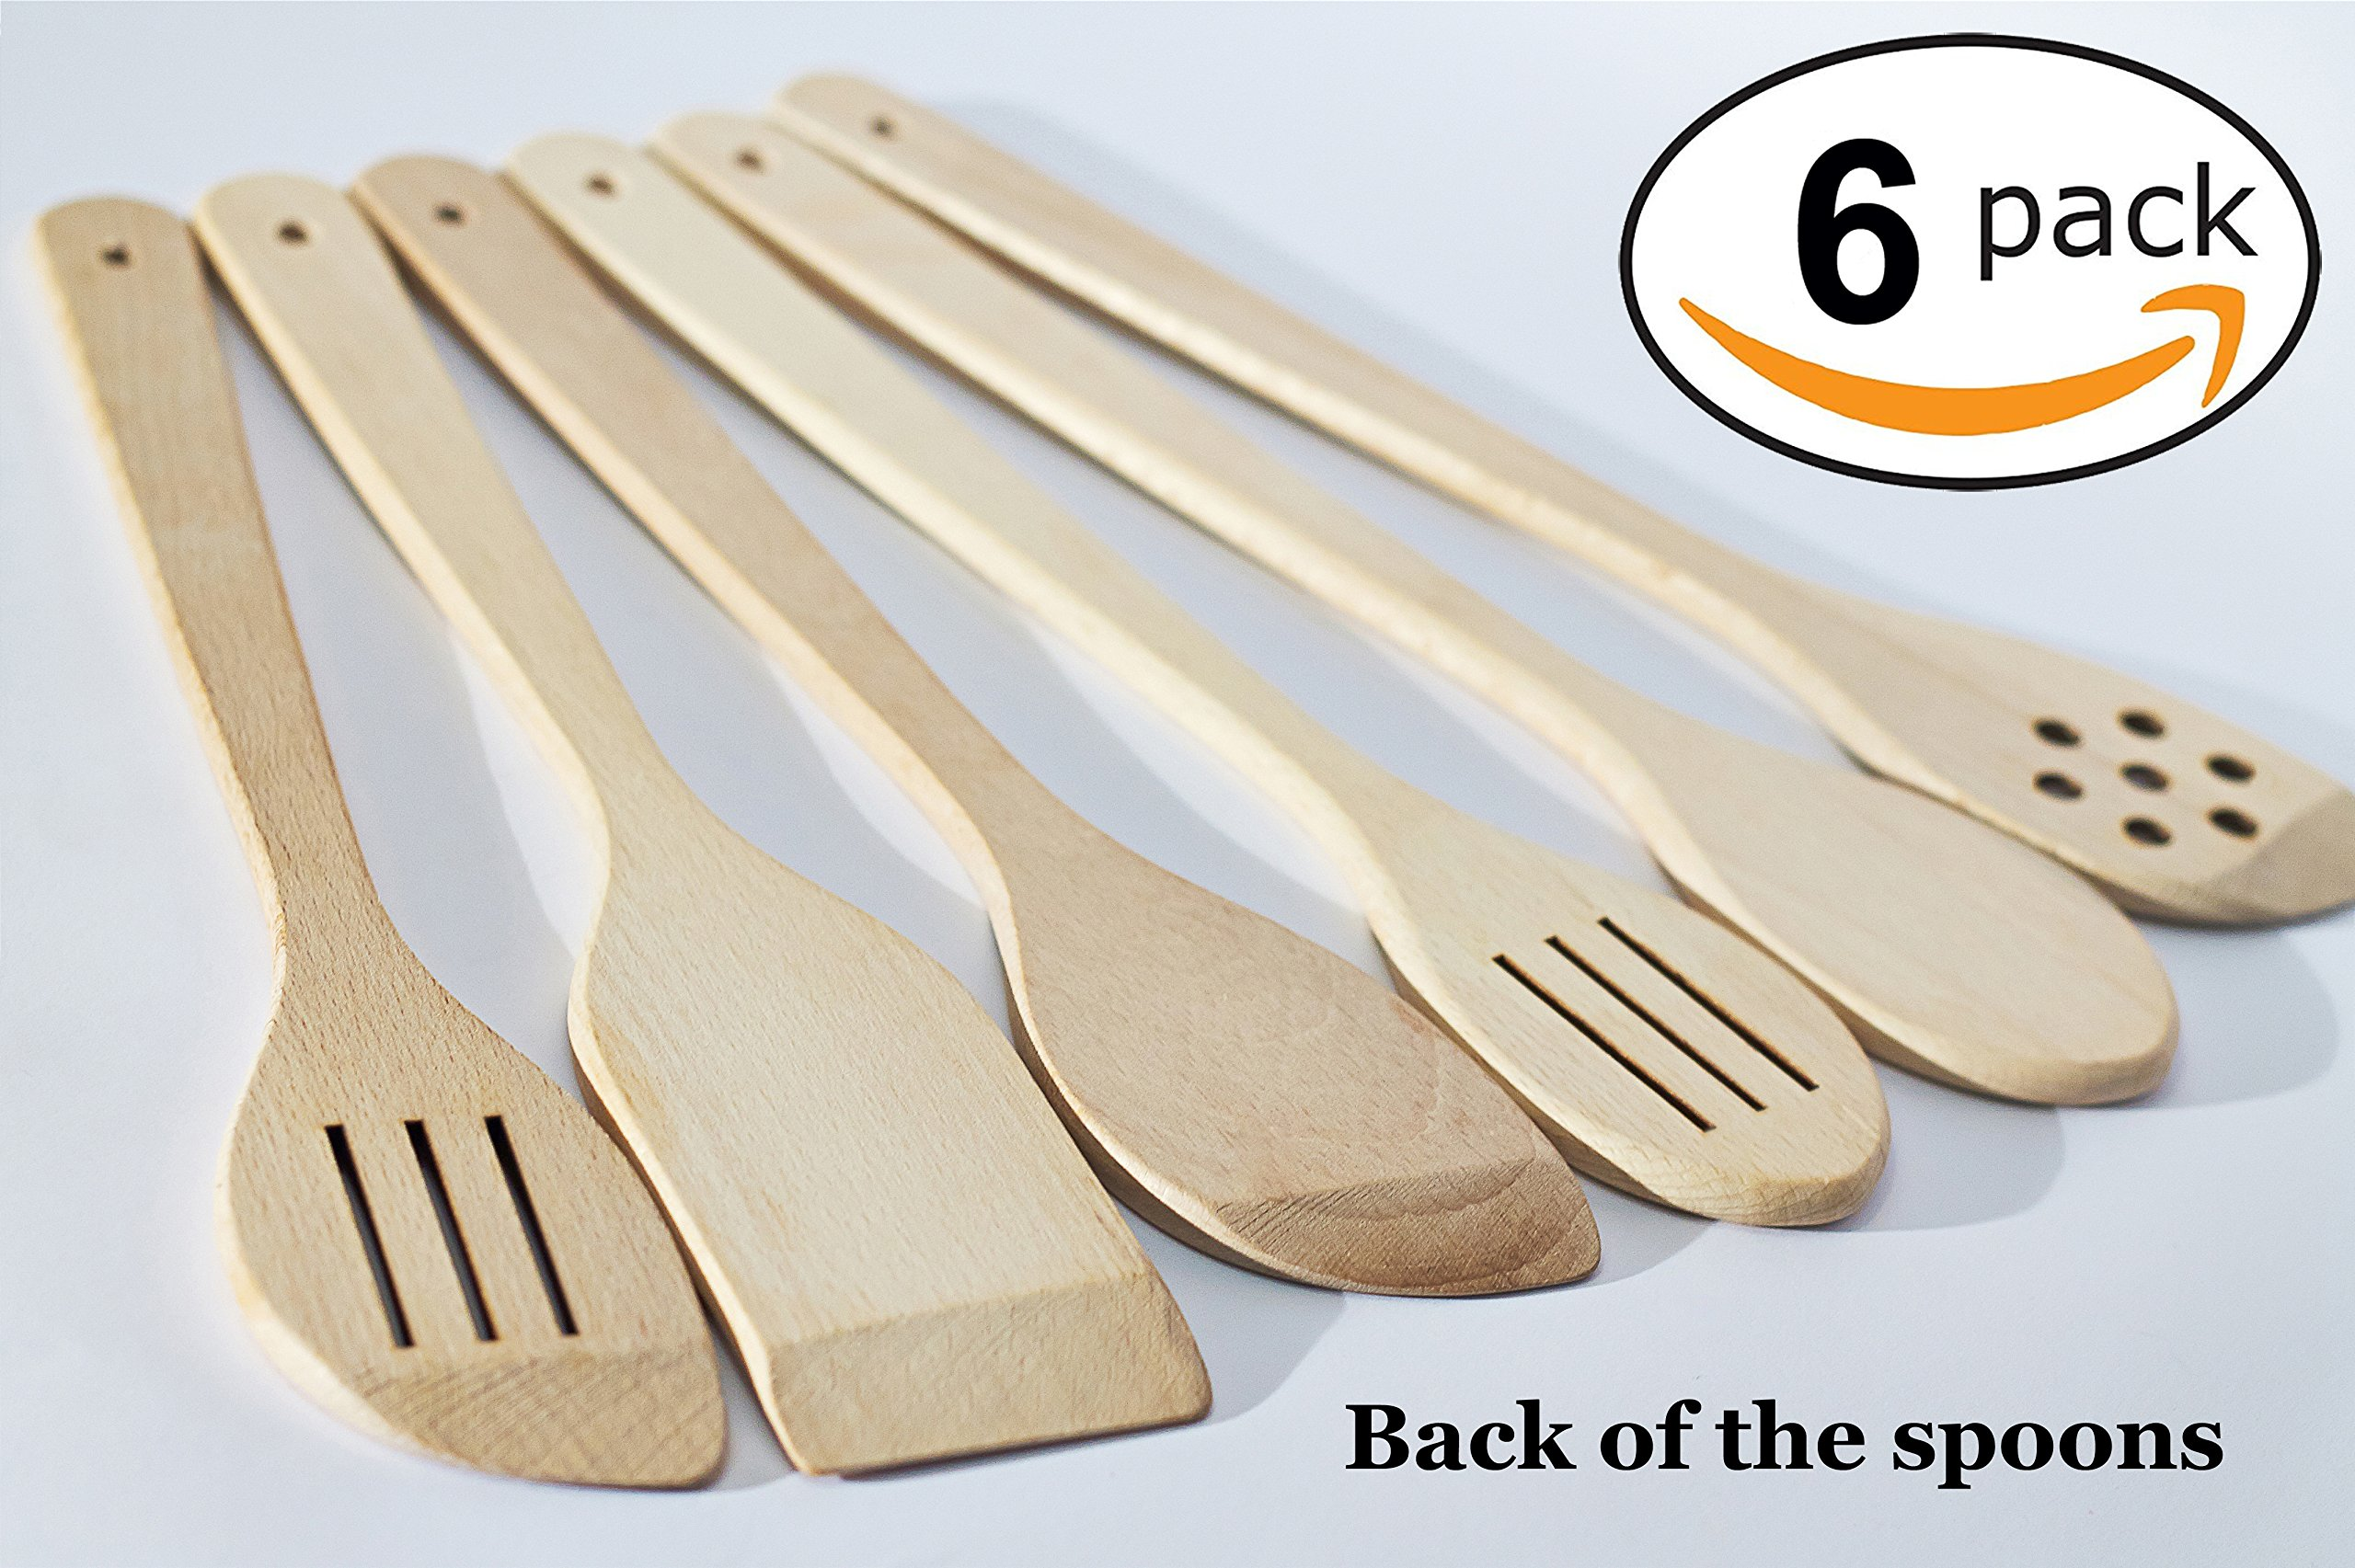 Healthy Cooking Utensils Set - 6 Wooden Spoons For Cooking – Natural Nonstick Hard Wood Spatula and Spoons – Uncoated and Unglued – Durable Eco-friendly and Safe Kitchen Cooking Tools. by ECOSALL (Image #2)